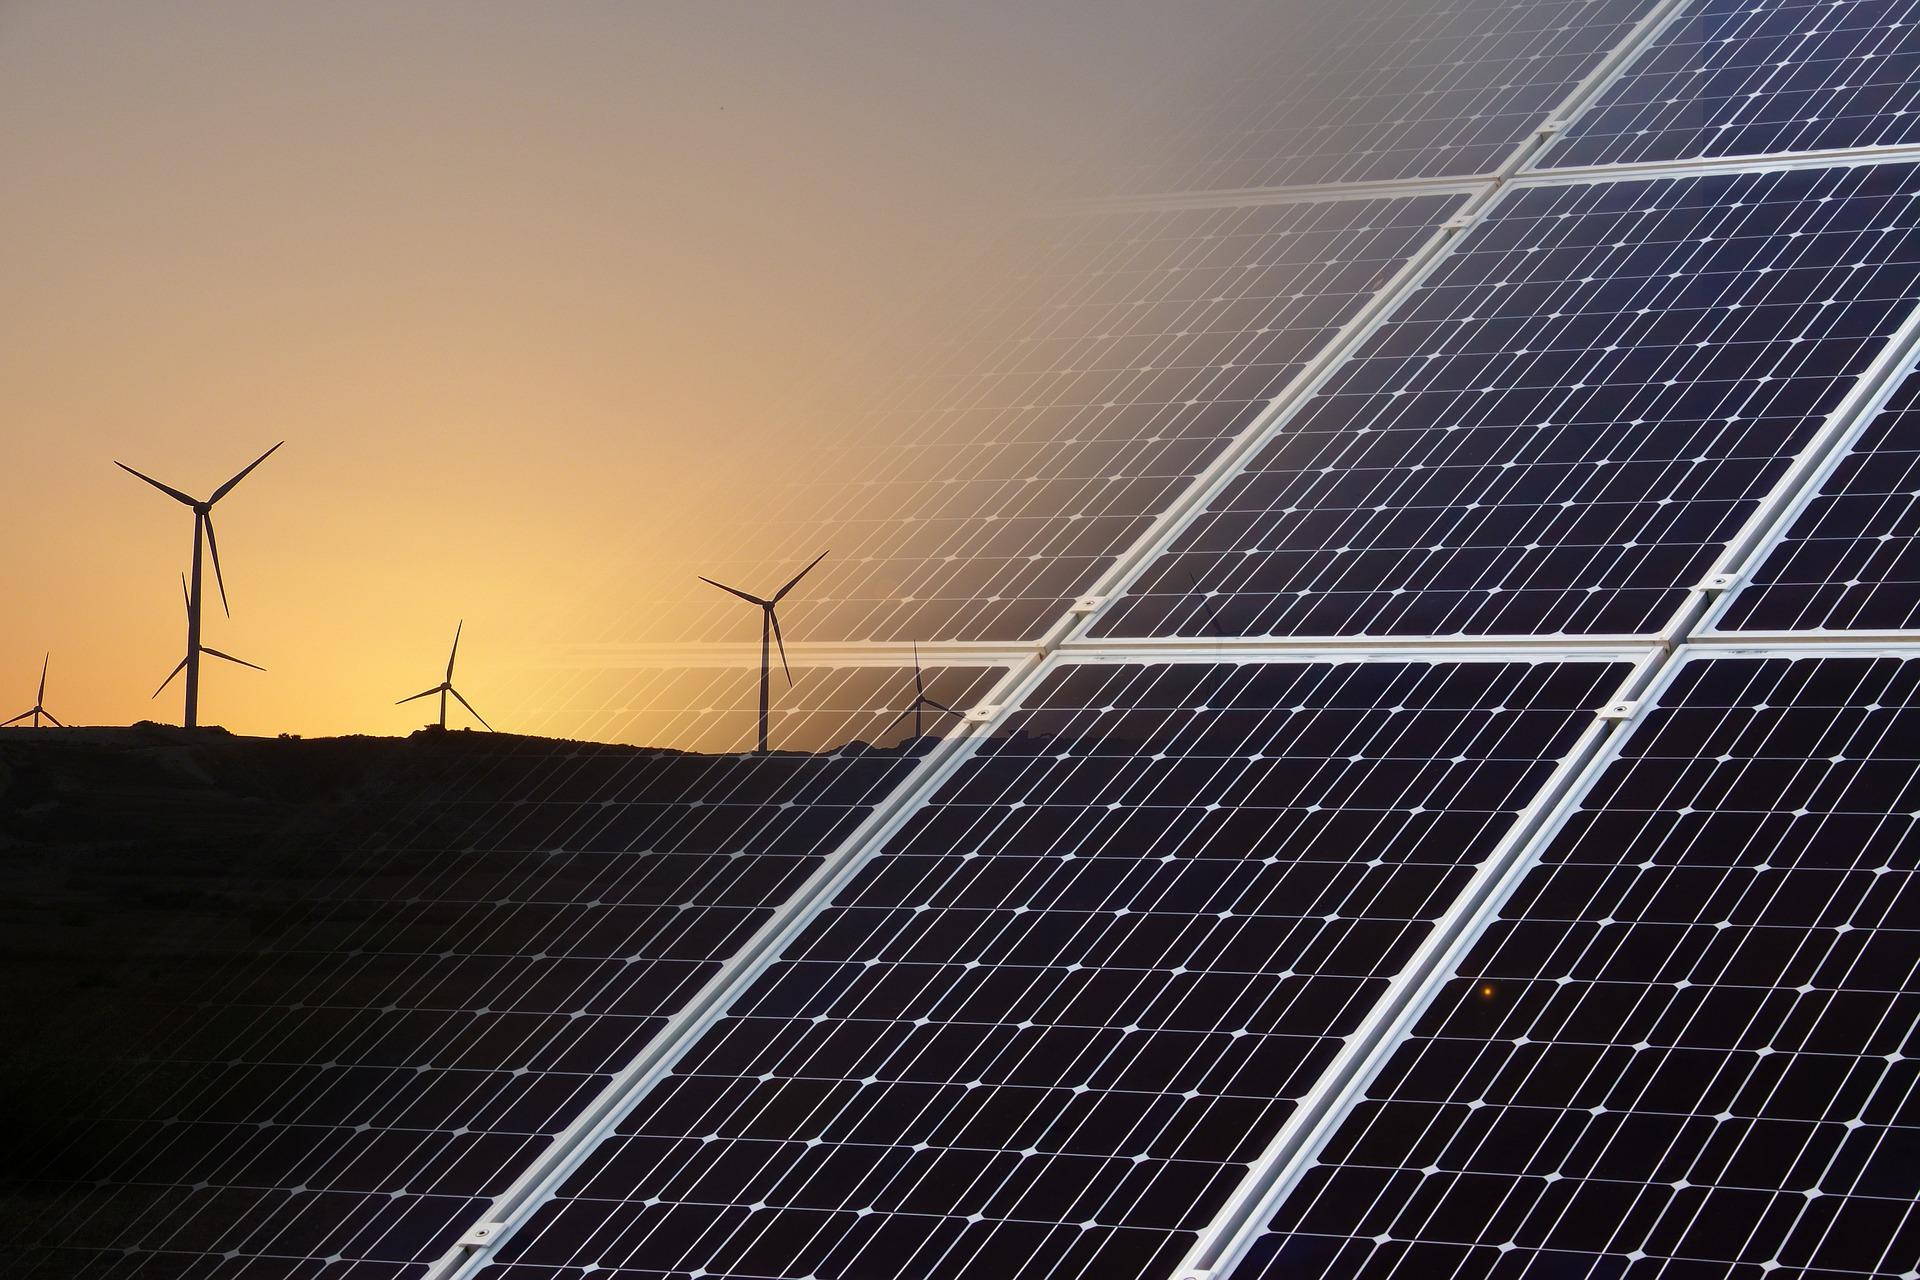 The rise of innovative PPA models comes as PV taps into them for subsidy-free certainty (Credit: Seagul / Pixabay)